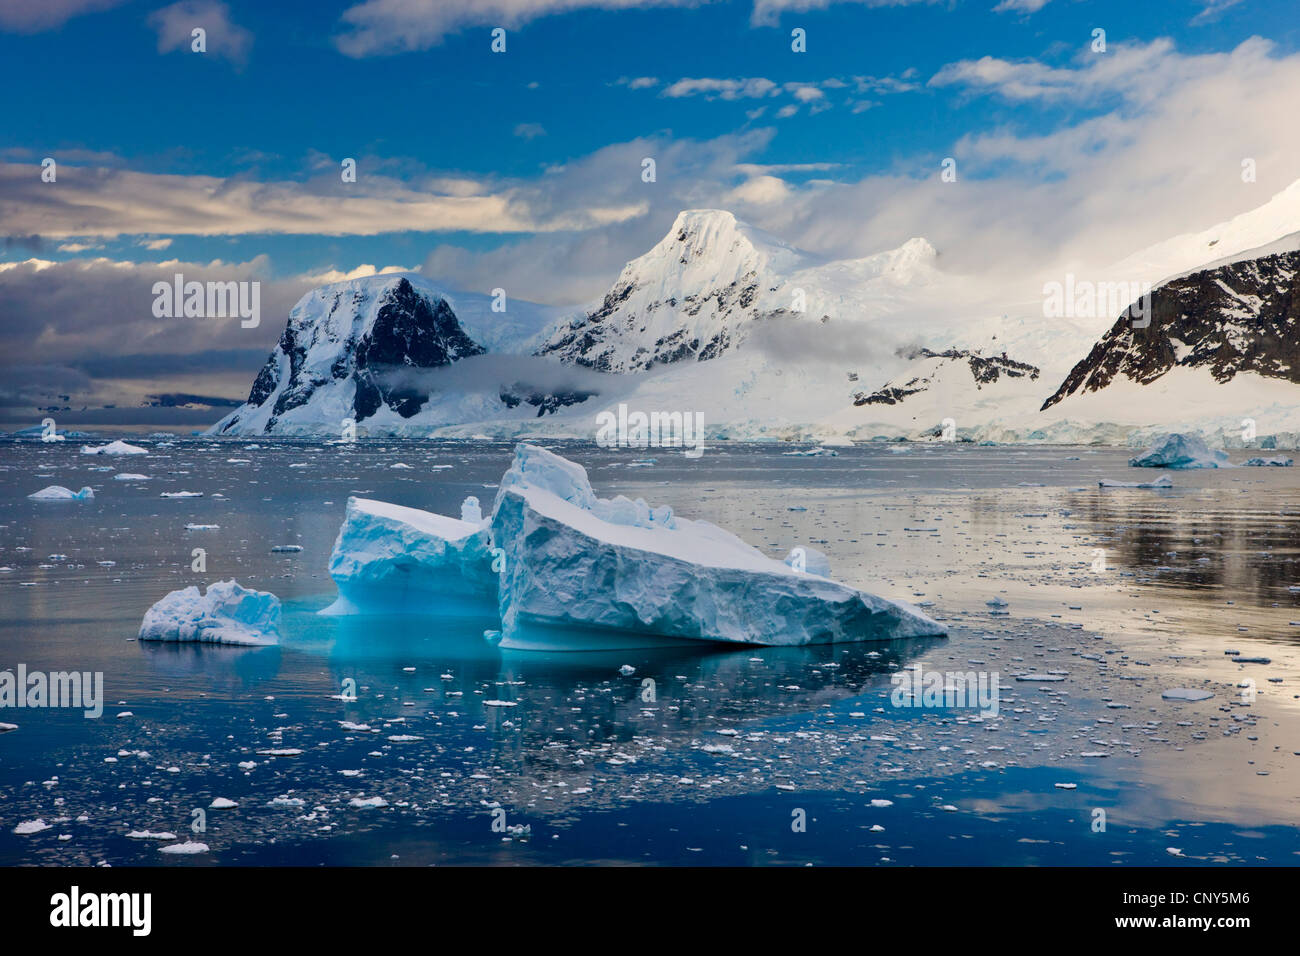 Icebergs drifting past snow covered mountains on the Gerlache Straight, Antarctic Peninsula, Antarctica. Summer - Stock Image